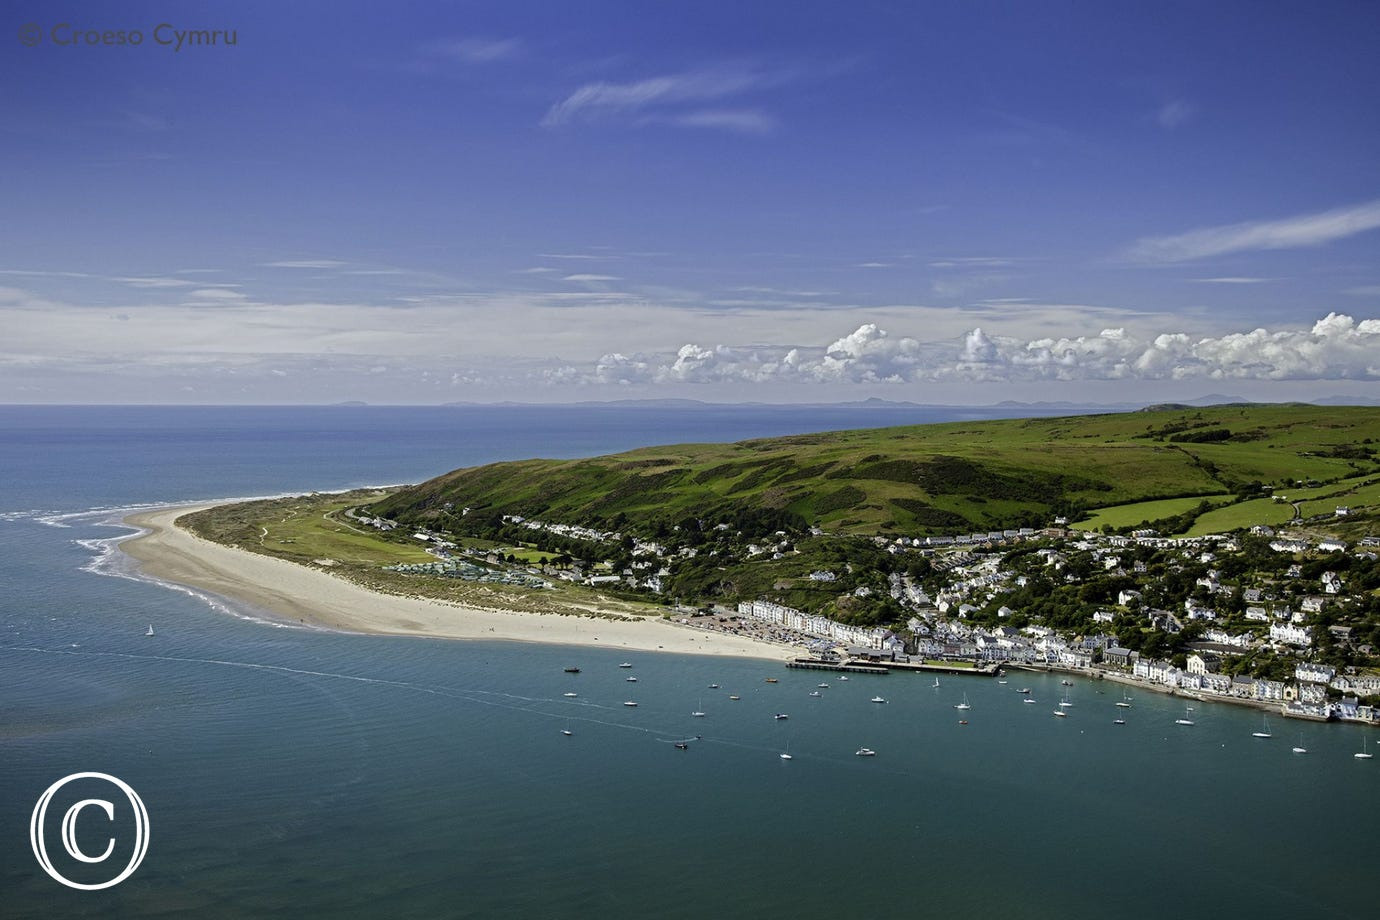 One of the first stops is Aberdyfi, just 10 miles away